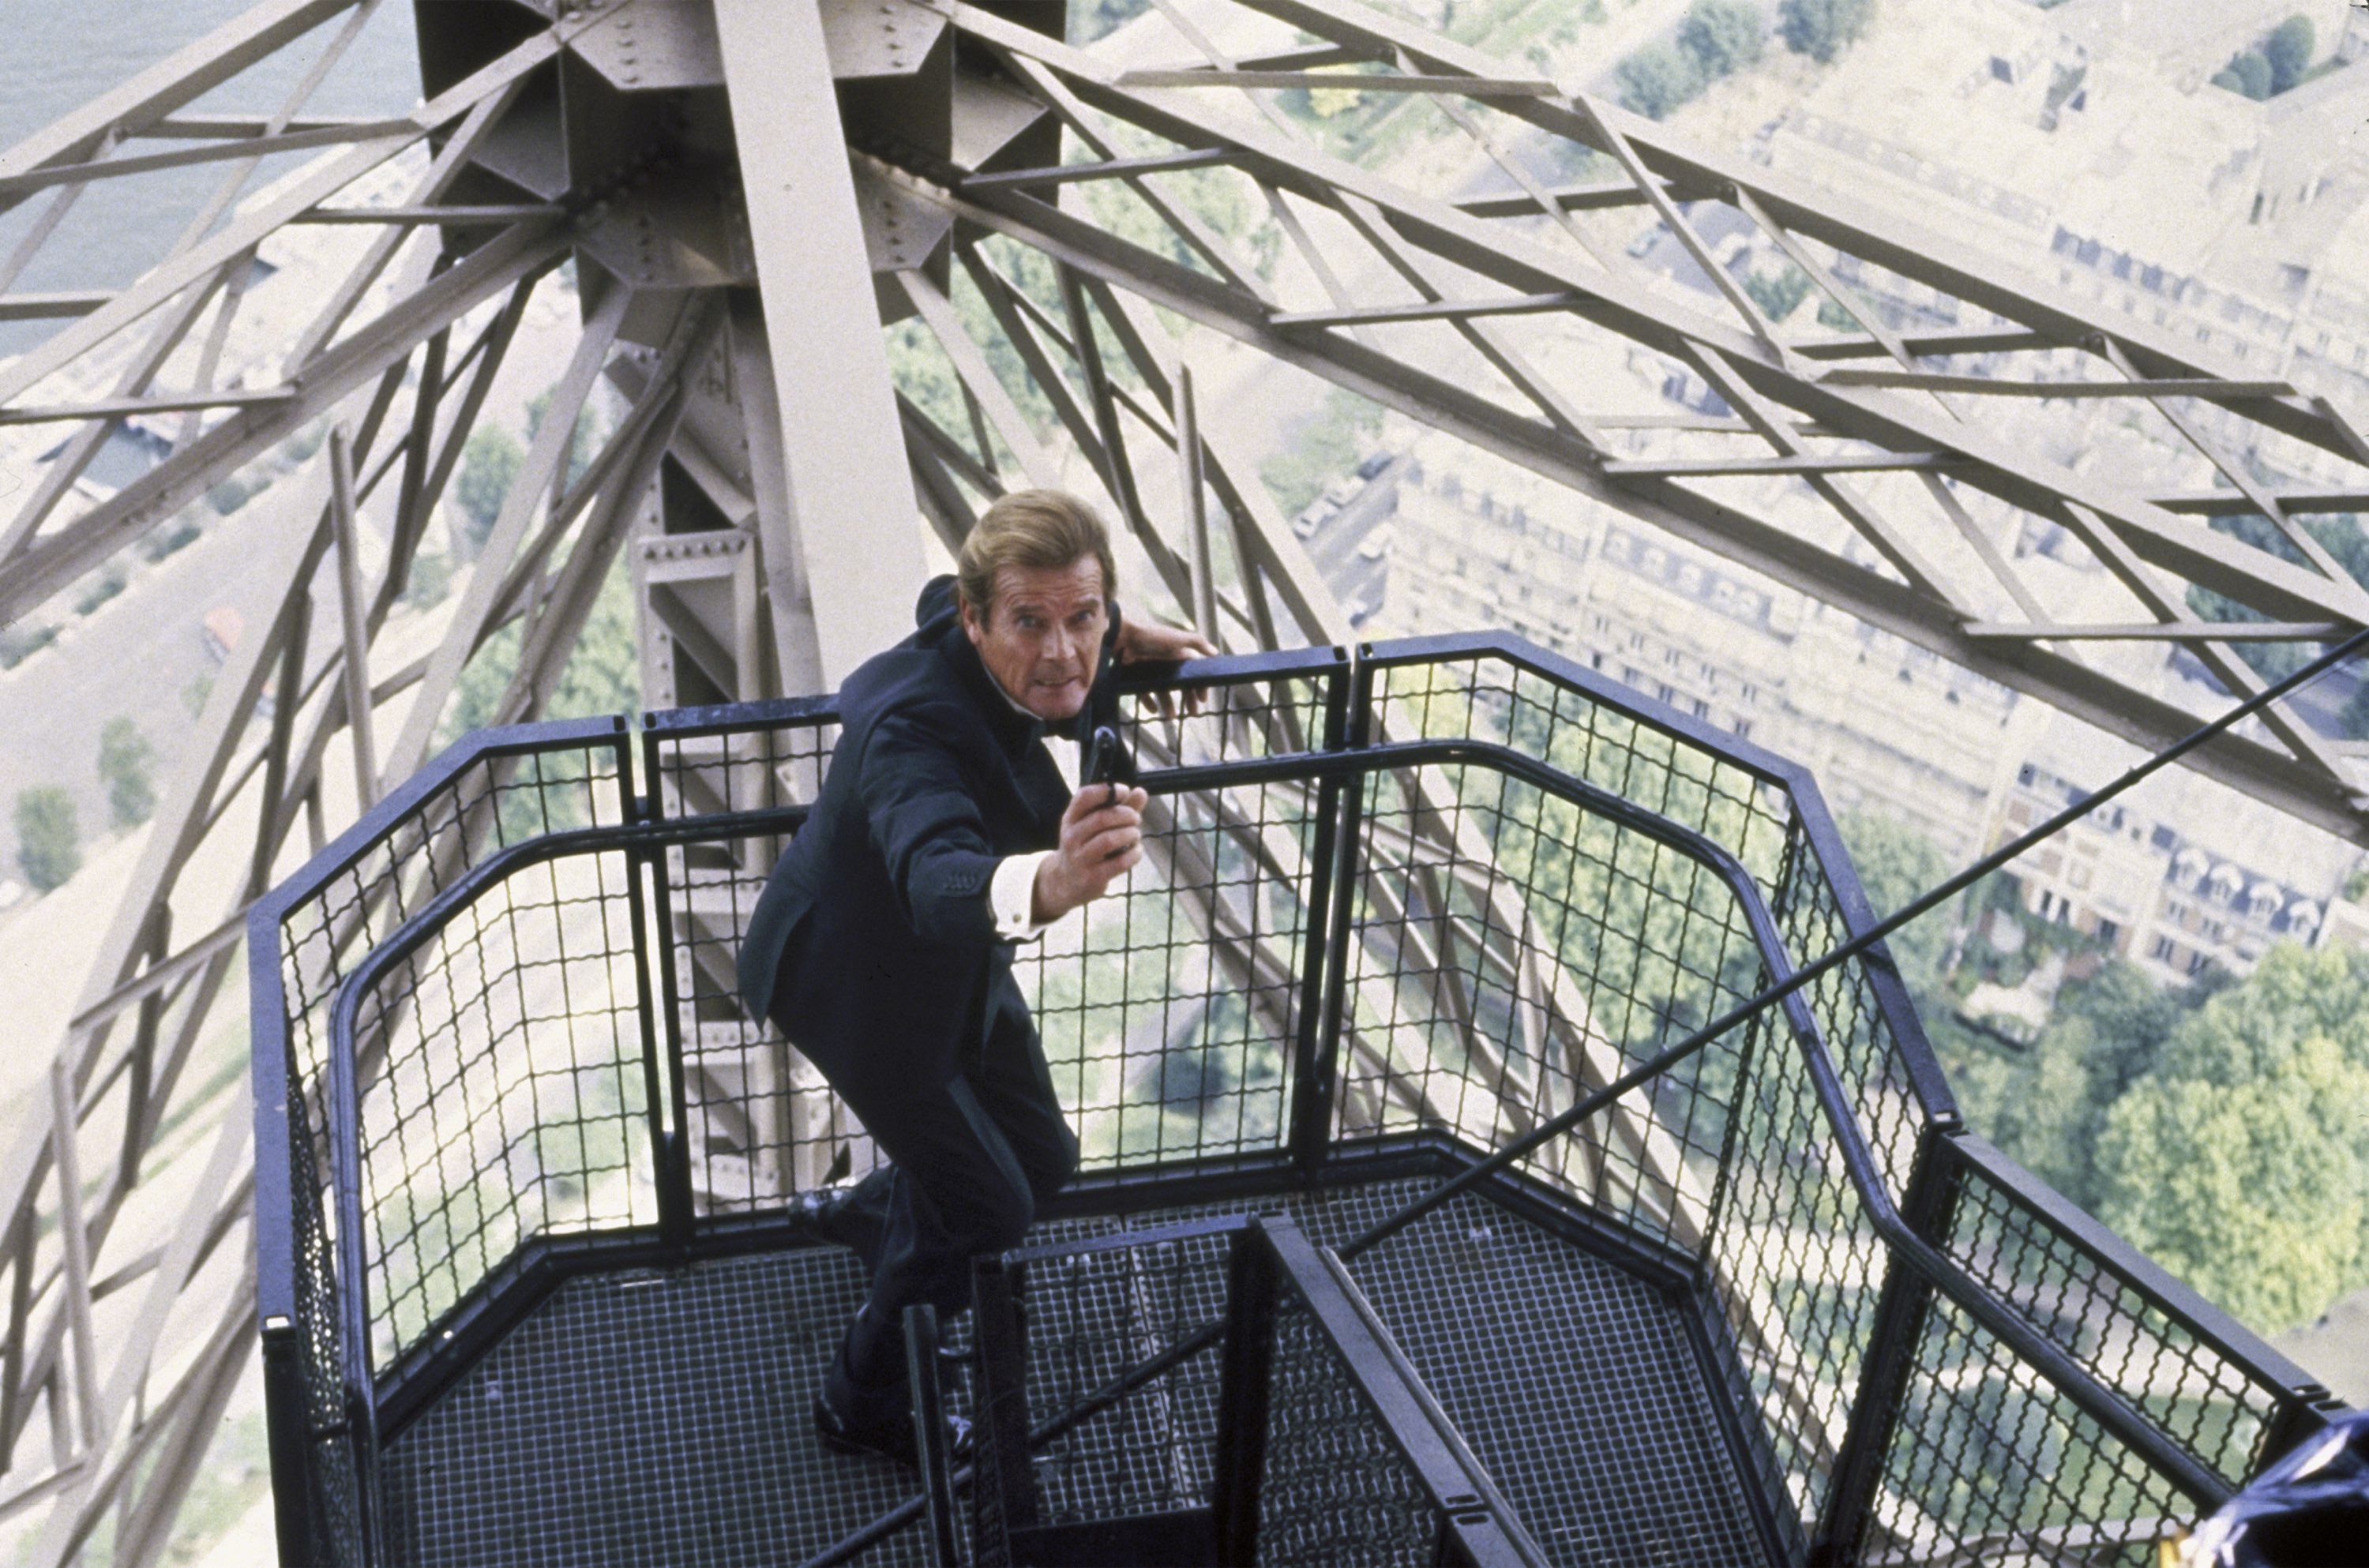 Roger Moore in his final outing as James Bond at the Eiffel Tower in A View to a Kill (1985)